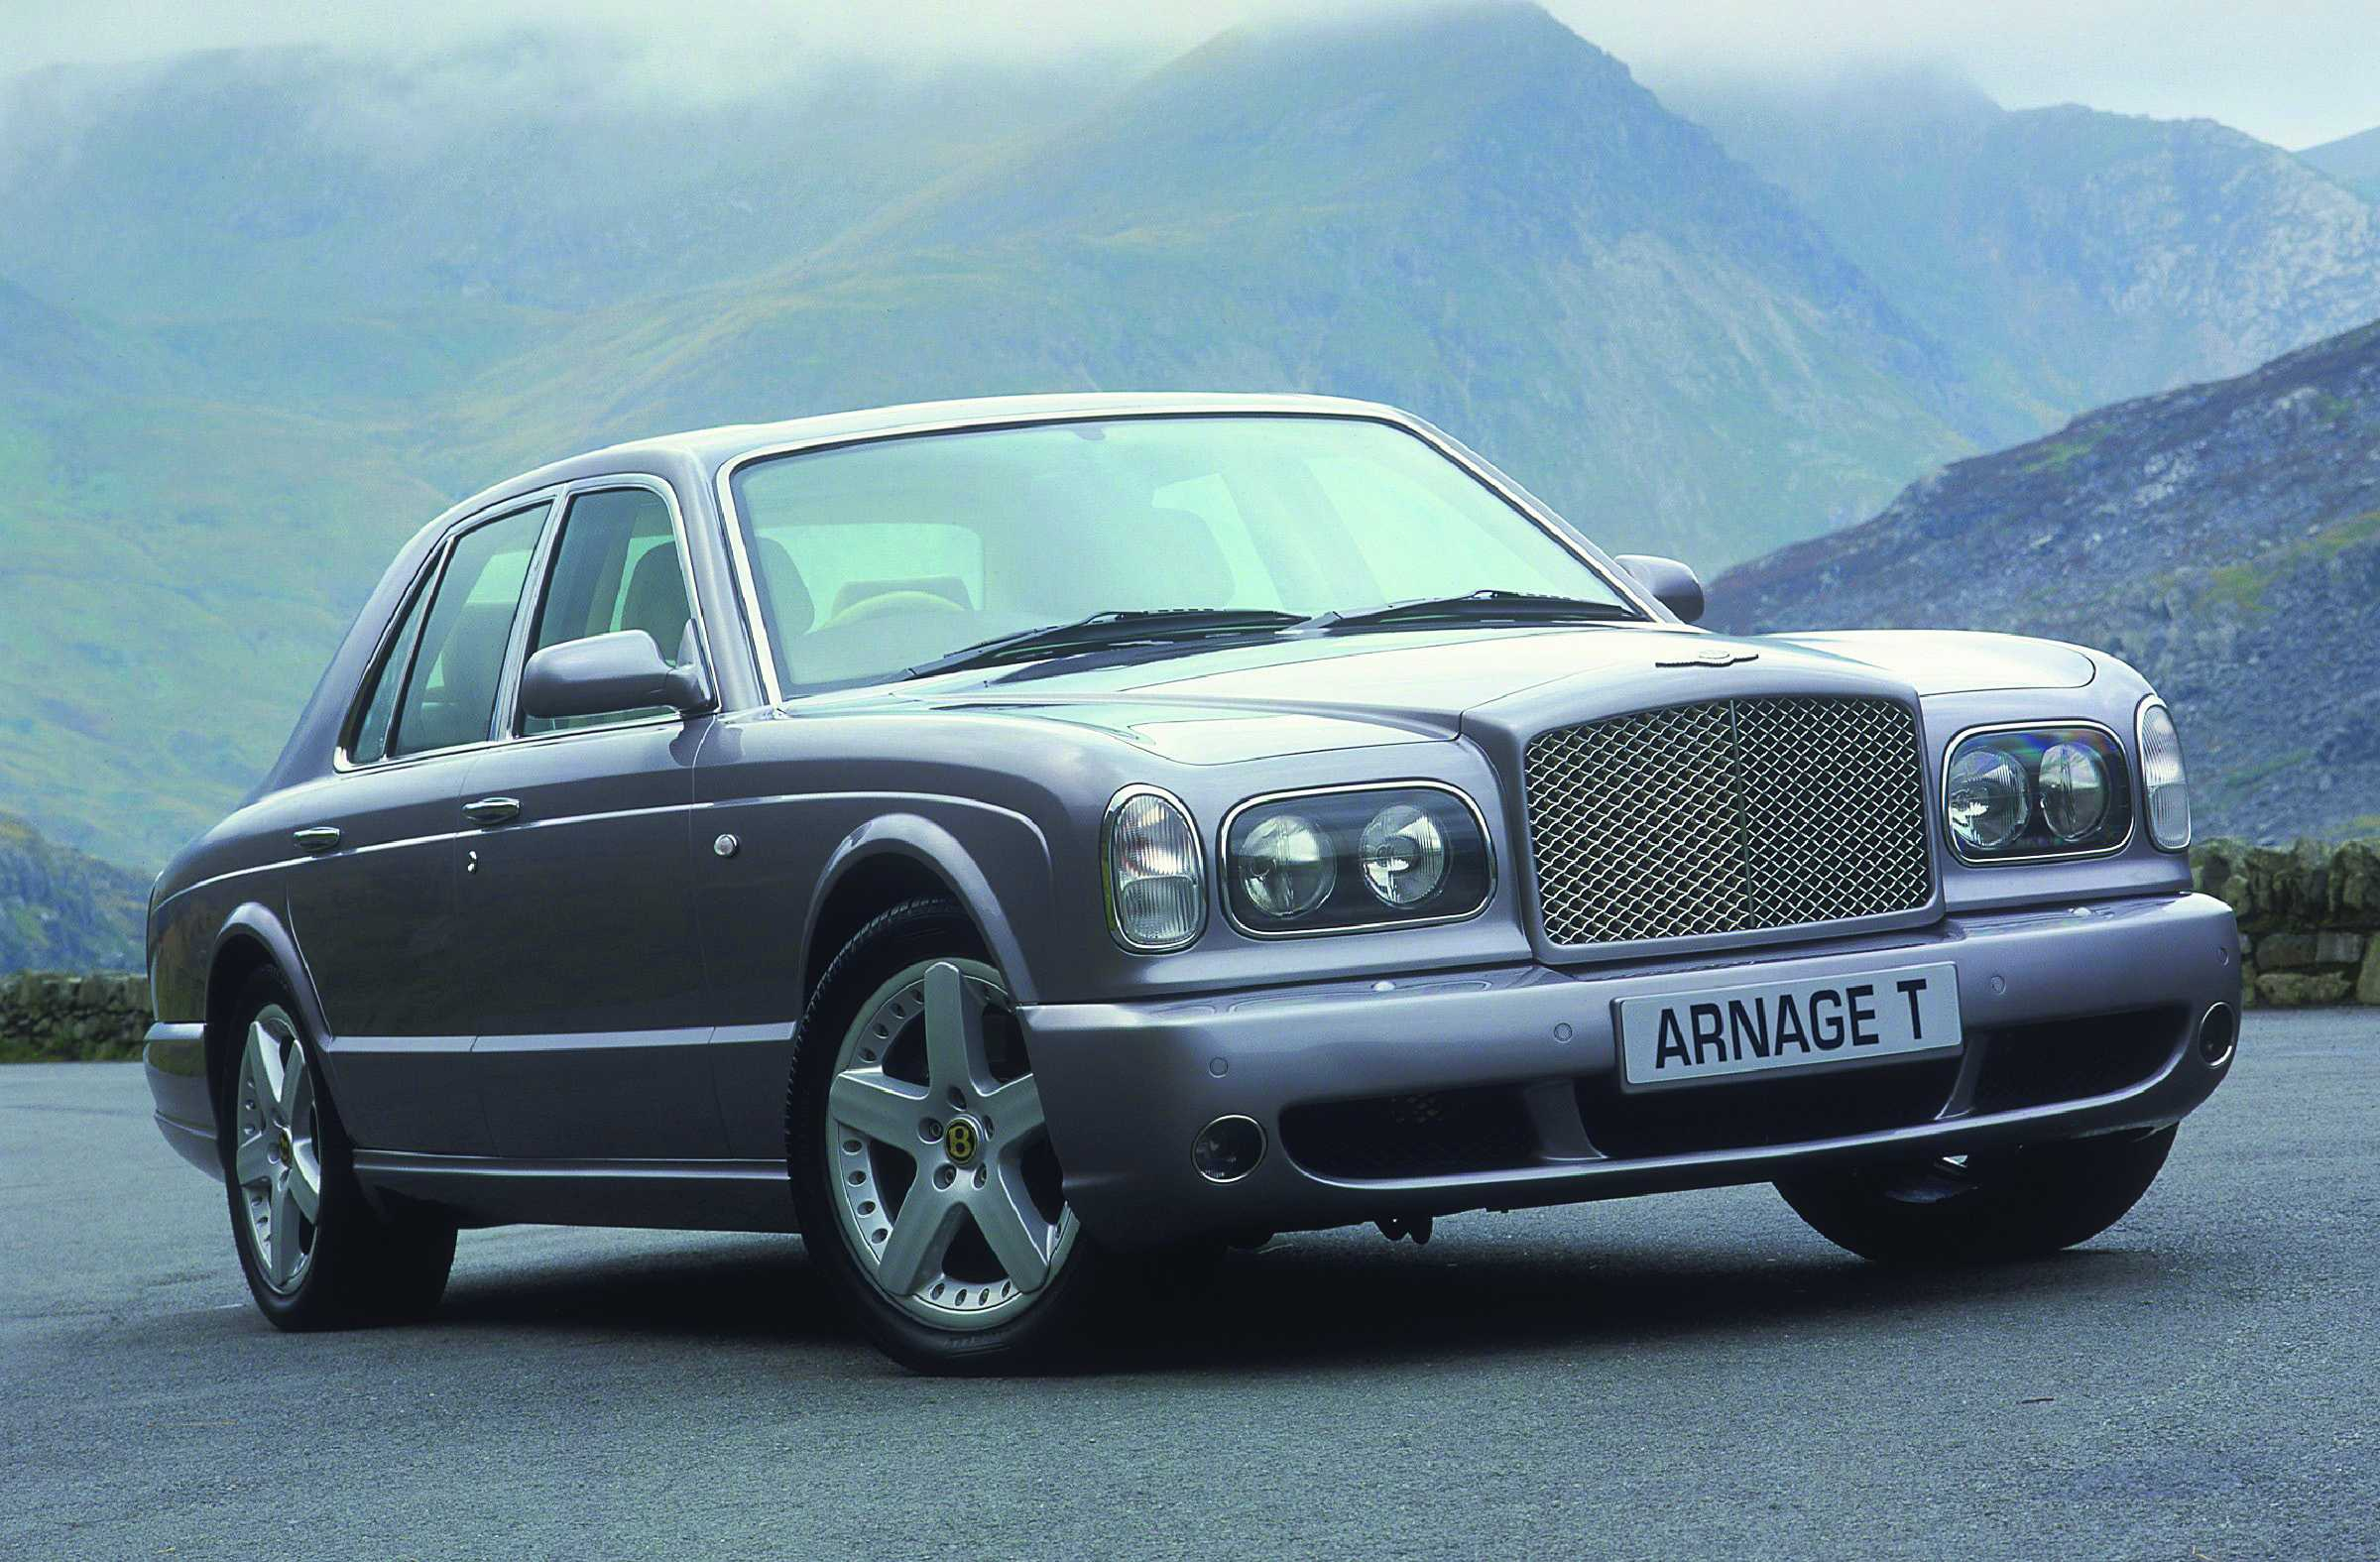 advice prices faults t for bentley reviews stats cars make year used model sale arnage specs